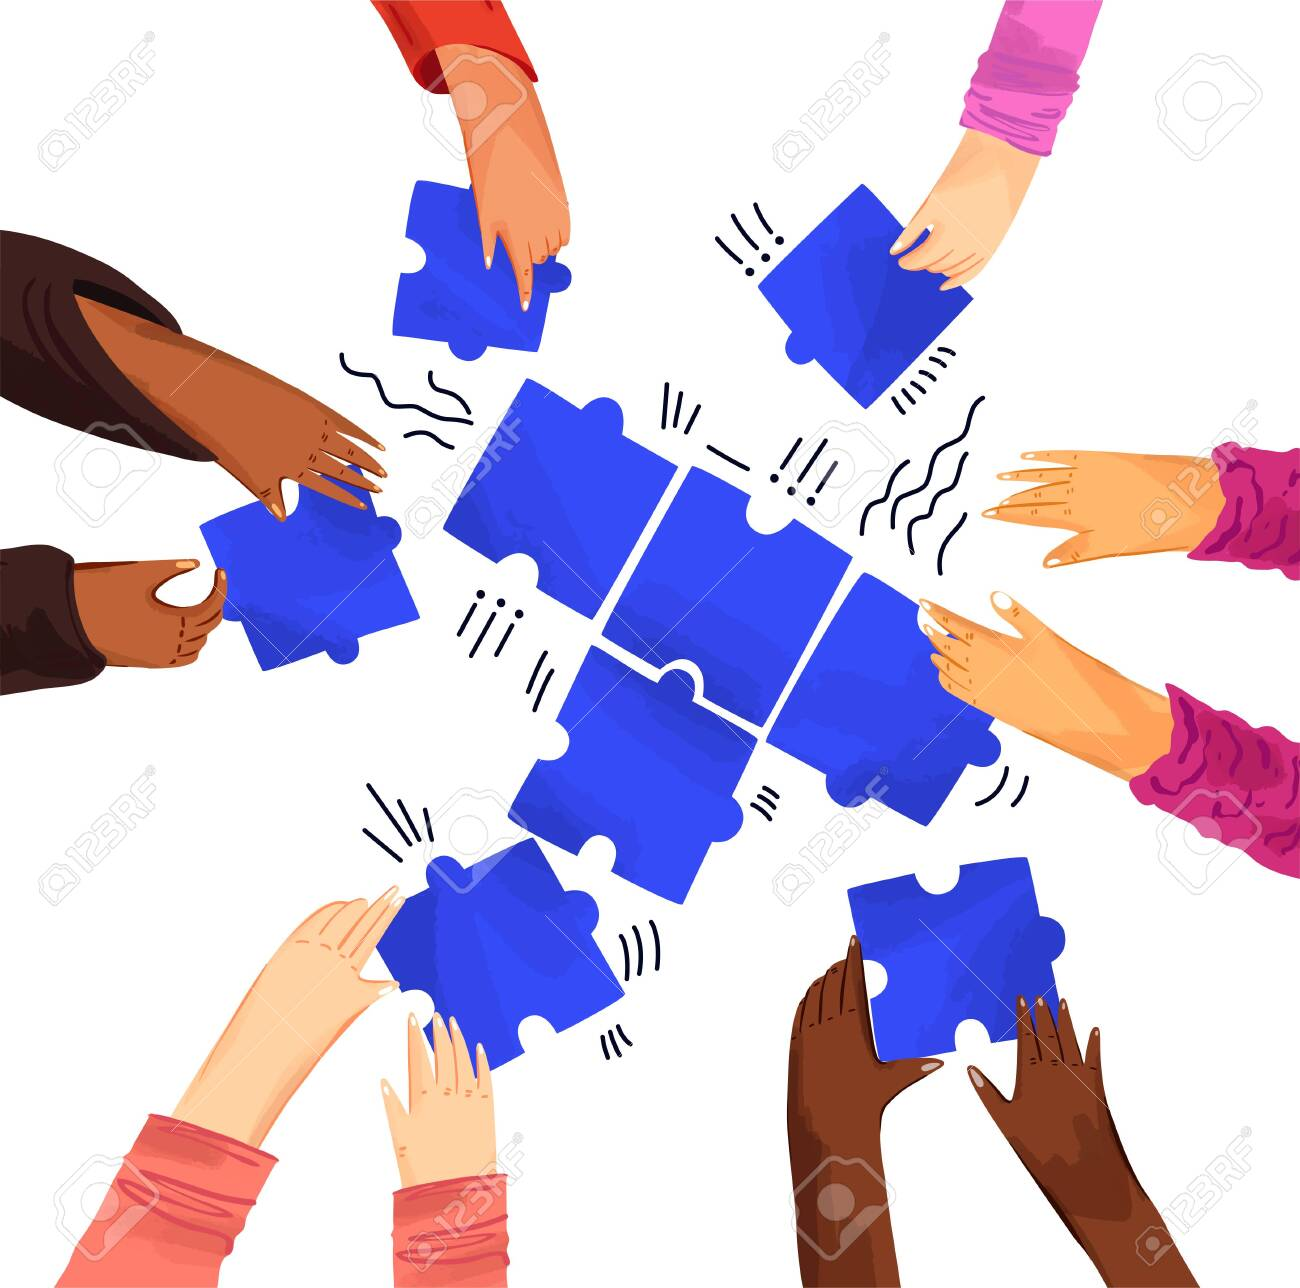 Hands of diverse people with puzzles vector illustration. Solving problems with team, making decisions. Hands assembling jigsaw puzzle, african and caucasian team put pieces together - 148395855